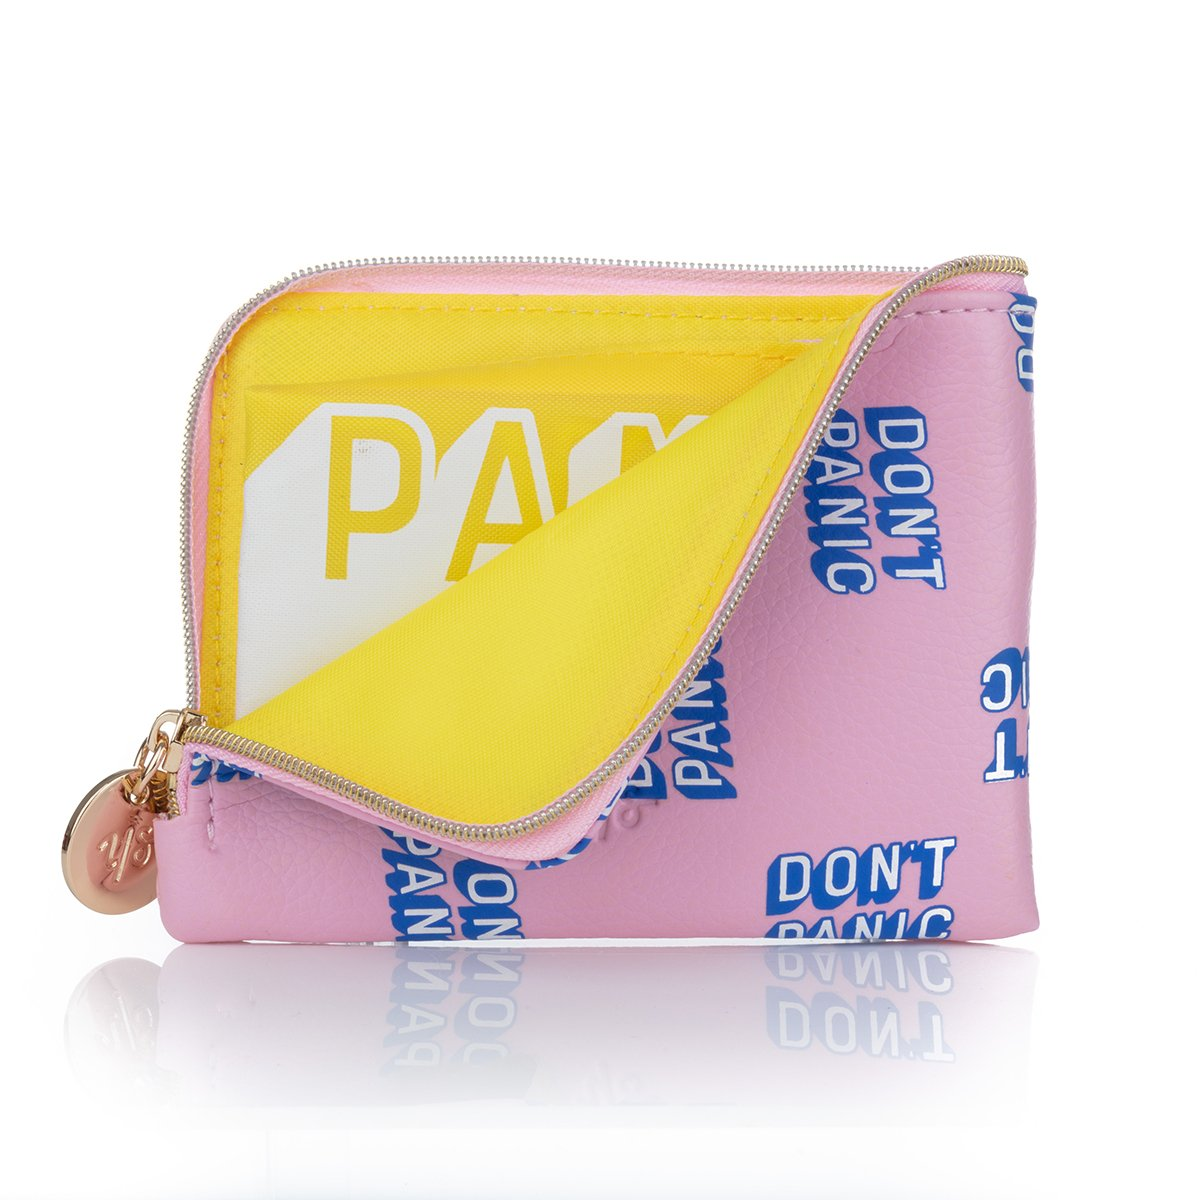 Don't Panic Coin Purse Yes Studio